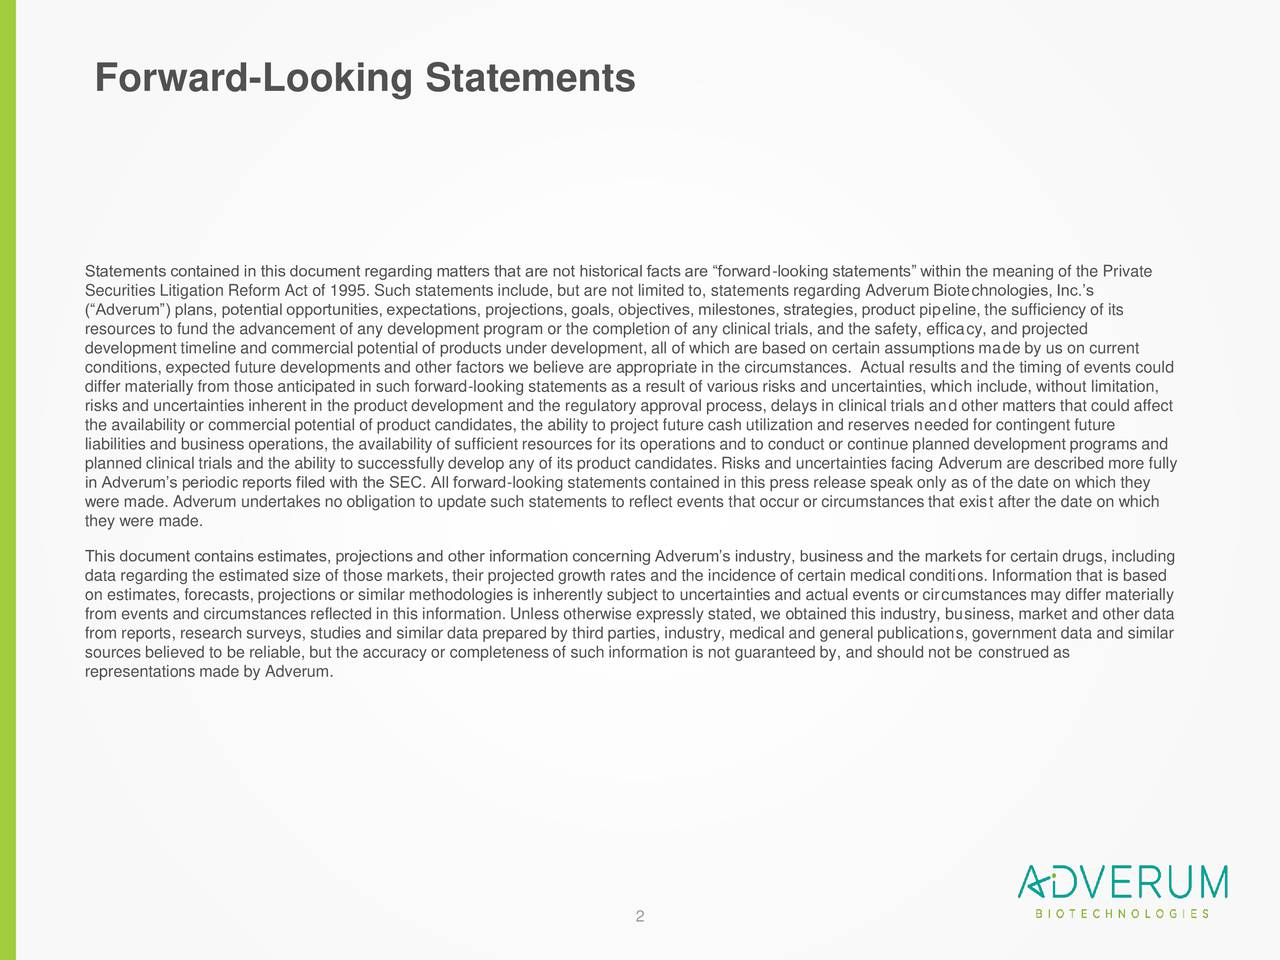 Statements contained in this document regarding matters that are not historical facts are forward-looking statements within the meaning of the Private Securities Litigation Reform Act of 1995. Such statements include, but are not limited to, statements regarding Adverum Biotechnologies, Inc.s (Adverum) plans, potential opportunities, expectations, projections, goals, objectives, milestones, strategies, product pipeline, the sufficiency of its resources to fund the advancement of any development program or the completion of any clinical trials, and the safety, efficacy, and projected development timeline and commercial potential of products under development, all of which are based on certain assumptions made by us on current conditions, expected future developments and other factors we believe are appropriate in the circumstances. Actual results and the timing of events could differ materially from those anticipated in such forward-looking statements as a result of various risks and uncertainties, which include, without limitation, risks and uncertainties inherent in the product development and the regulatory approval process, delays in clinical trials and other matters that could affect the availability or commercial potential of product candidates, the ability to project future cash utilization and reserves needed for contingent future liabilities and business operations, the availability of sufficient resources for its operations and to conduct or continue planned development programs and planned clinical trials and the ability to successfully develop any of its product candidates. Risks and uncertainties facingAdverum are described more fully in Adverums periodic reports filed with the SEC. All forward-looking statements contained in this press release speak only as of the date on which they were made. Adverum undertakes no obligation to update such statements to reflect events that occur or circumstances that exist after the date on which they were made. This d